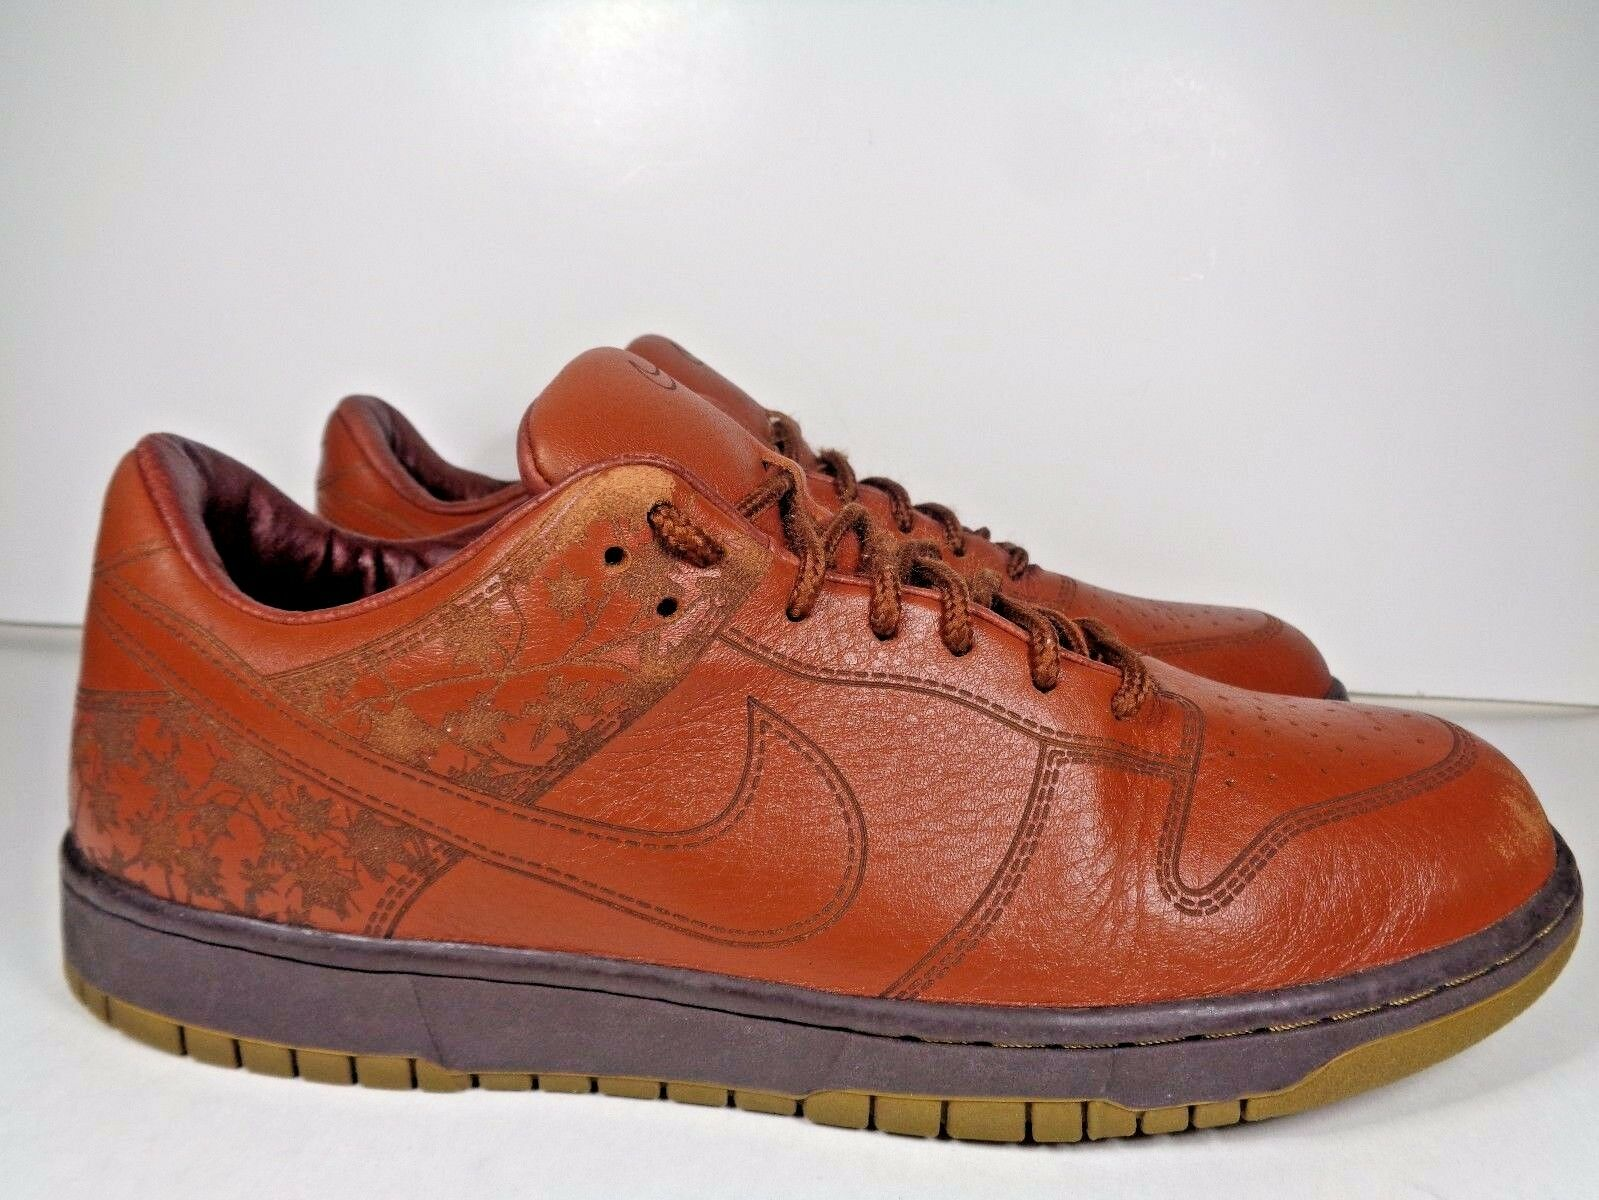 Mens Nike Dunk Low 1 Piece Pony 312424-222 Basketball shoes size 10.5 New shoes for men and women, limited time discount